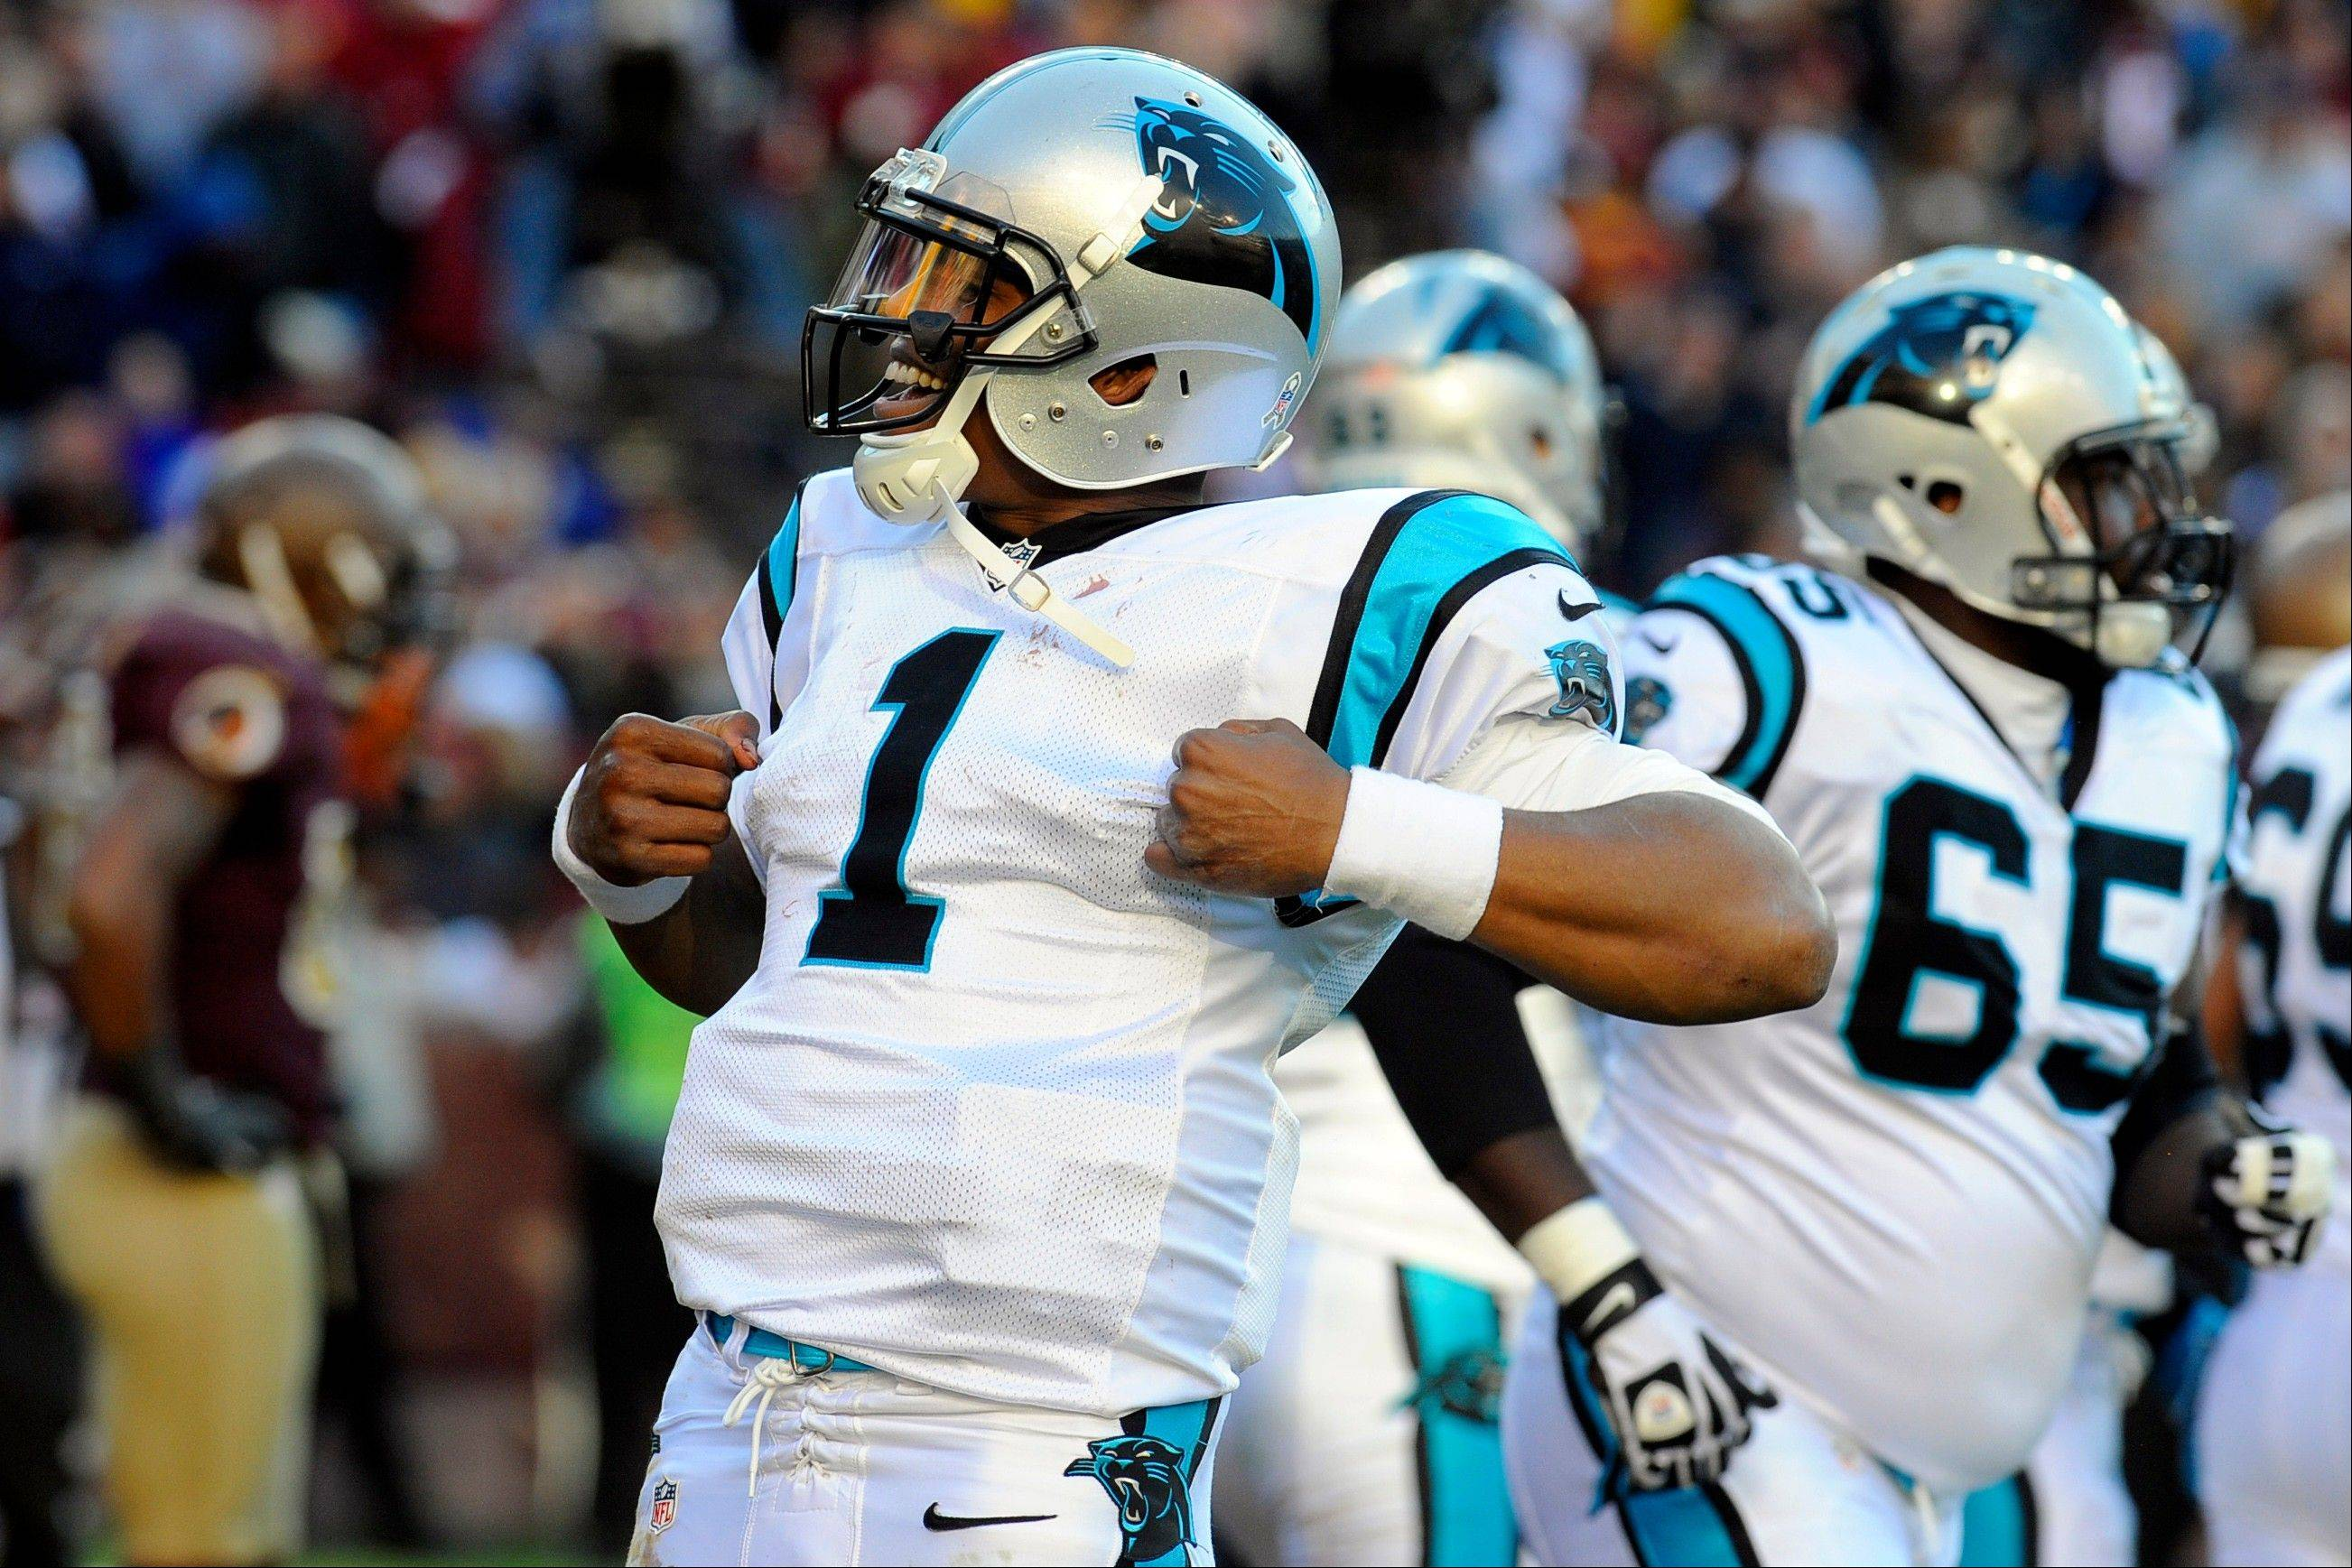 Carolina Panthers quarterback Cam Newton celebrates after his touchdown during the second half against the Washington Redskins on Sunday in Landover, Md.